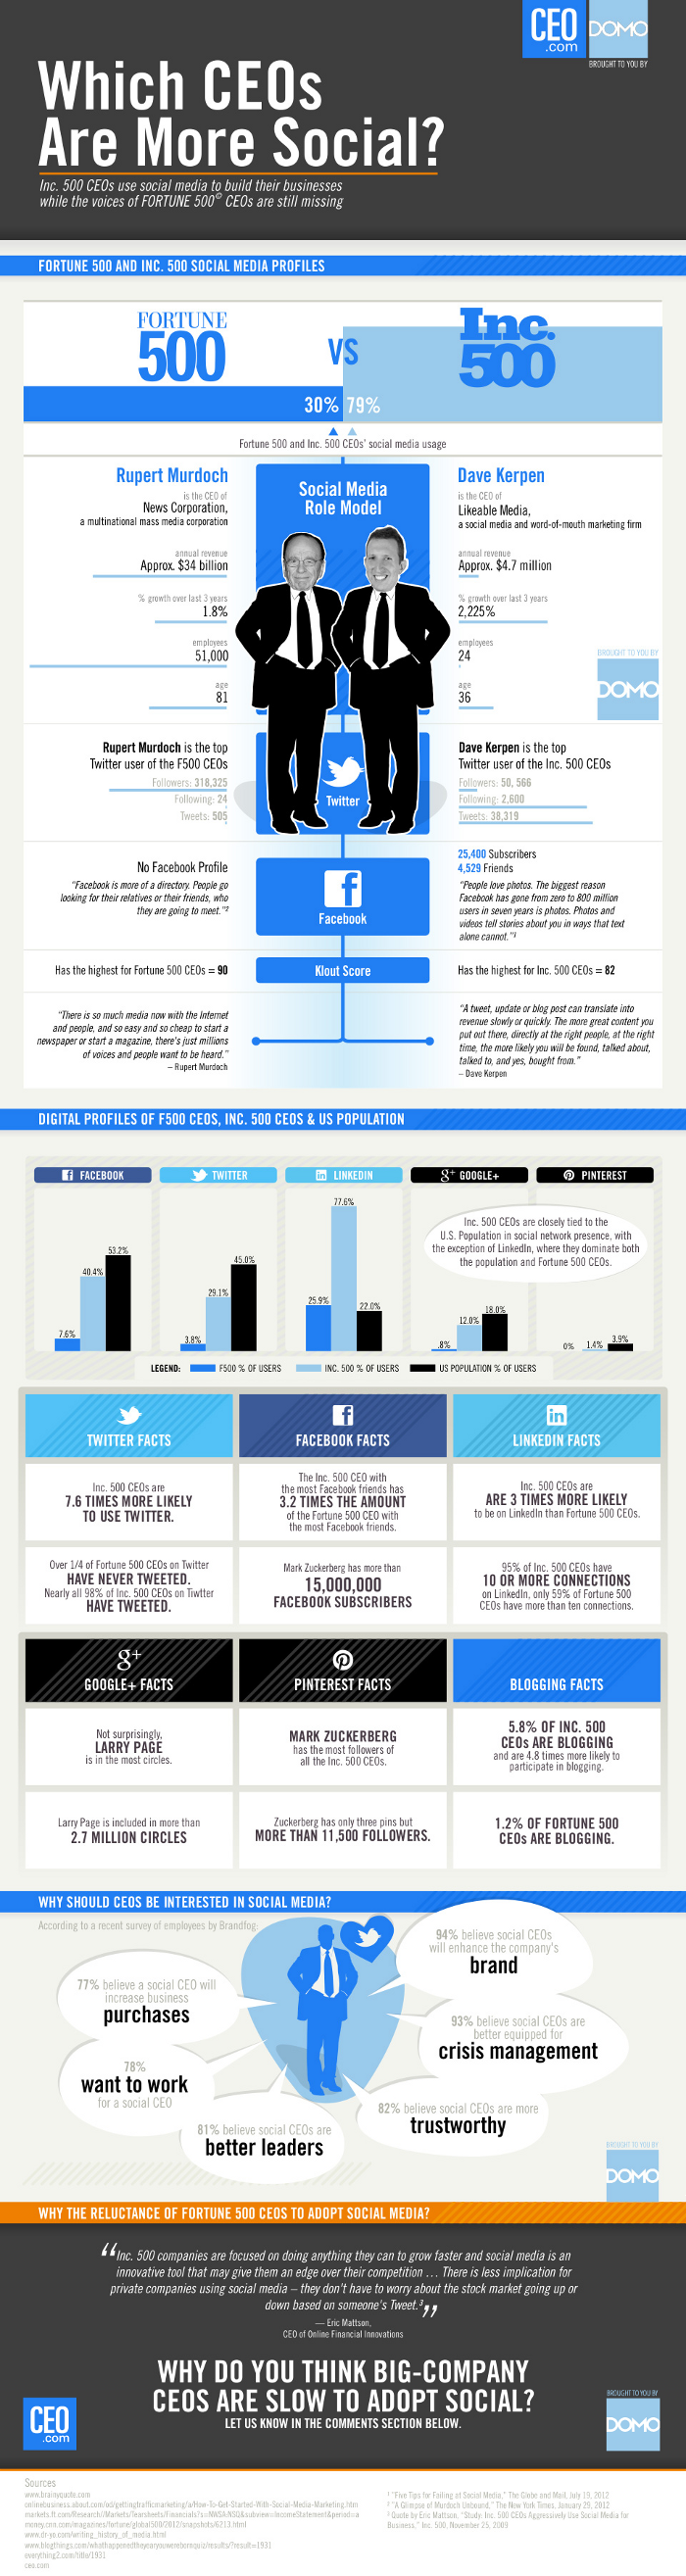 Social Media CEO Social Business Infographic 2012